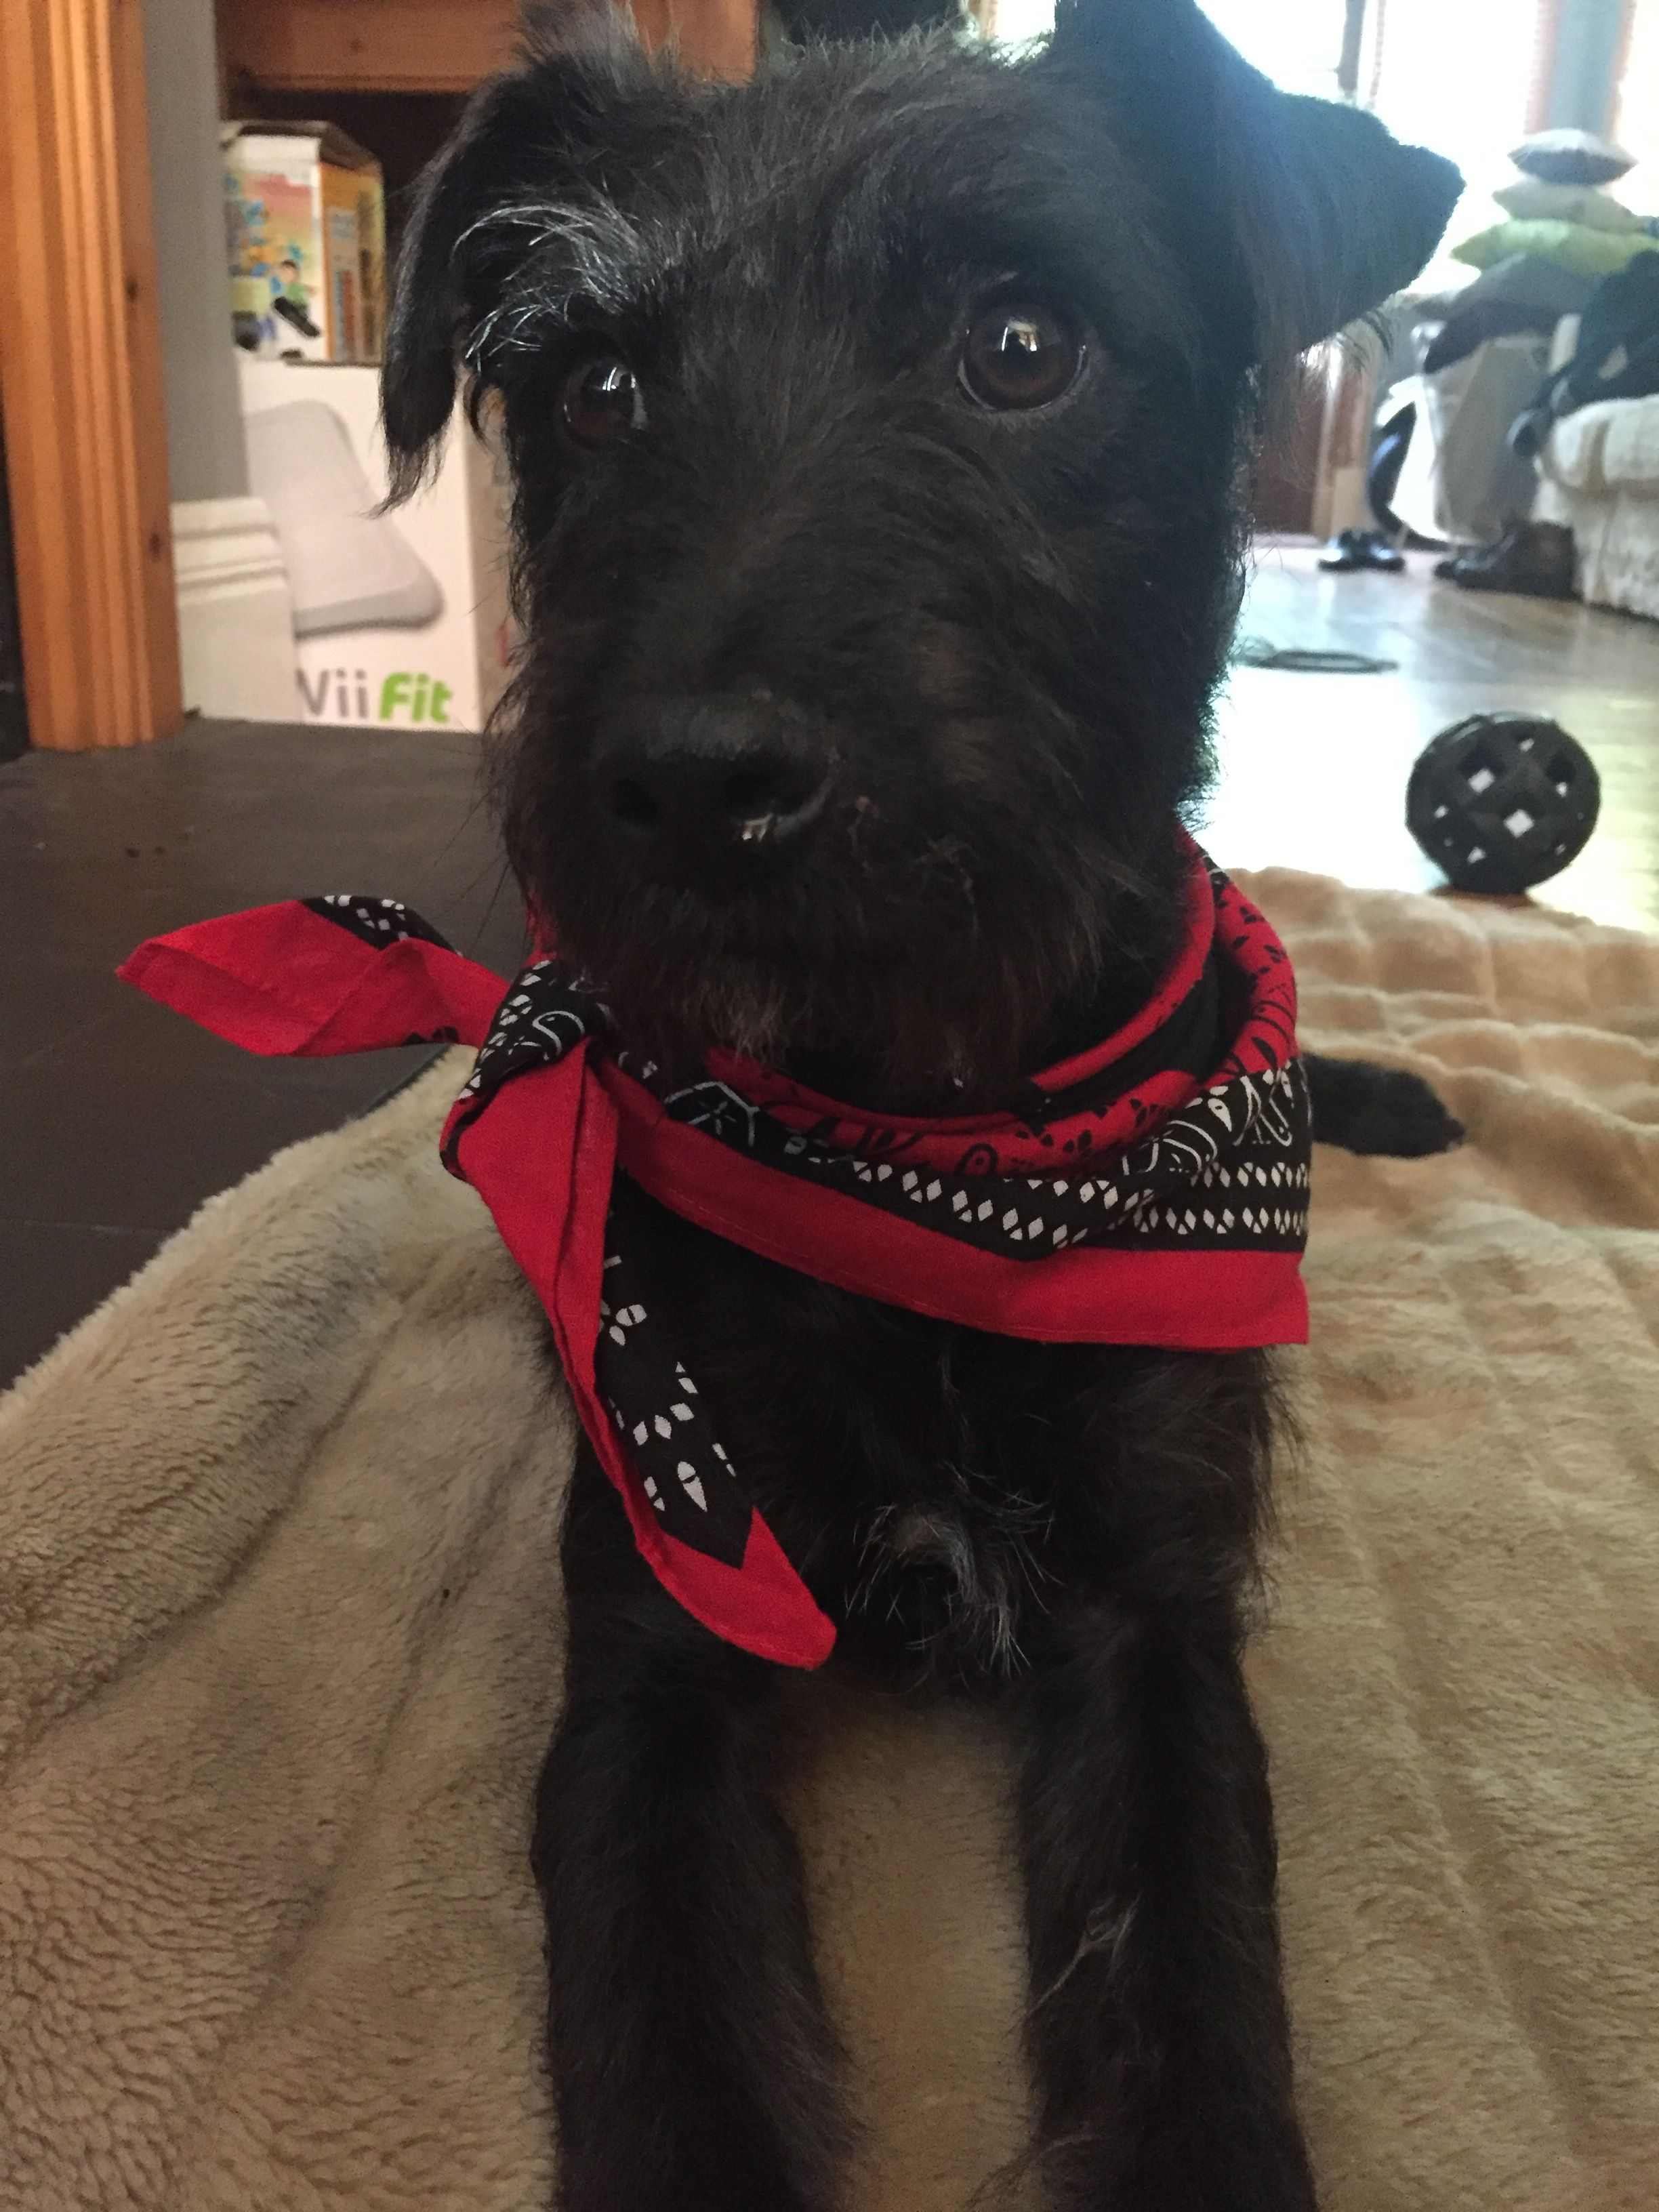 Our Patterdale With His Carhartt Bandana To Celebrate His Arrival